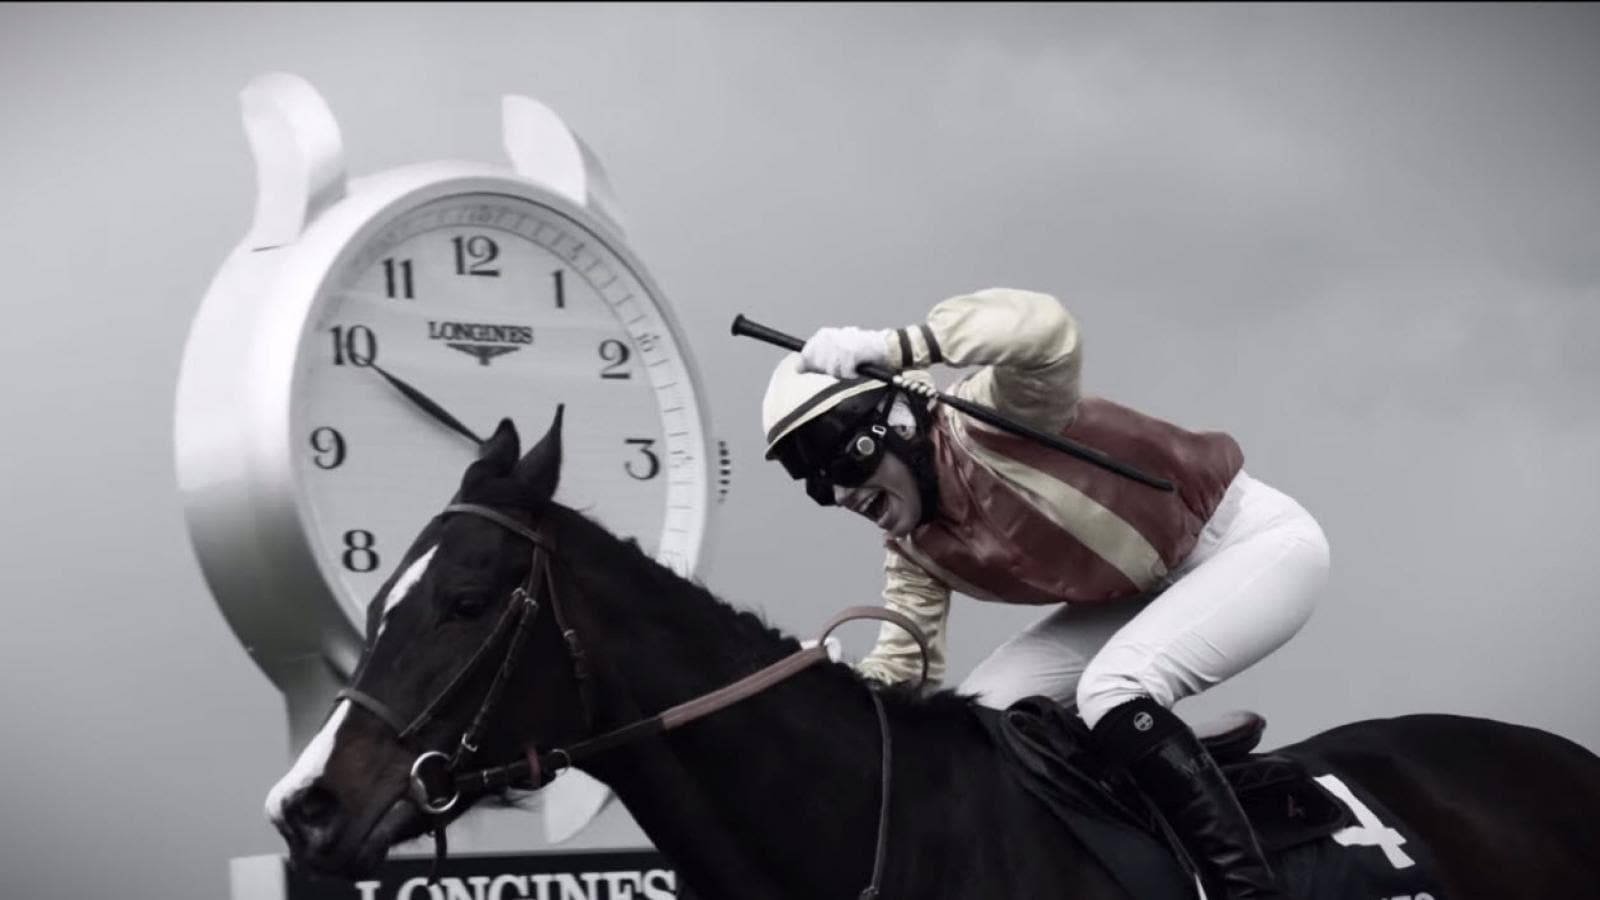 new horseracing TV spot,Longines DolceVita;2016